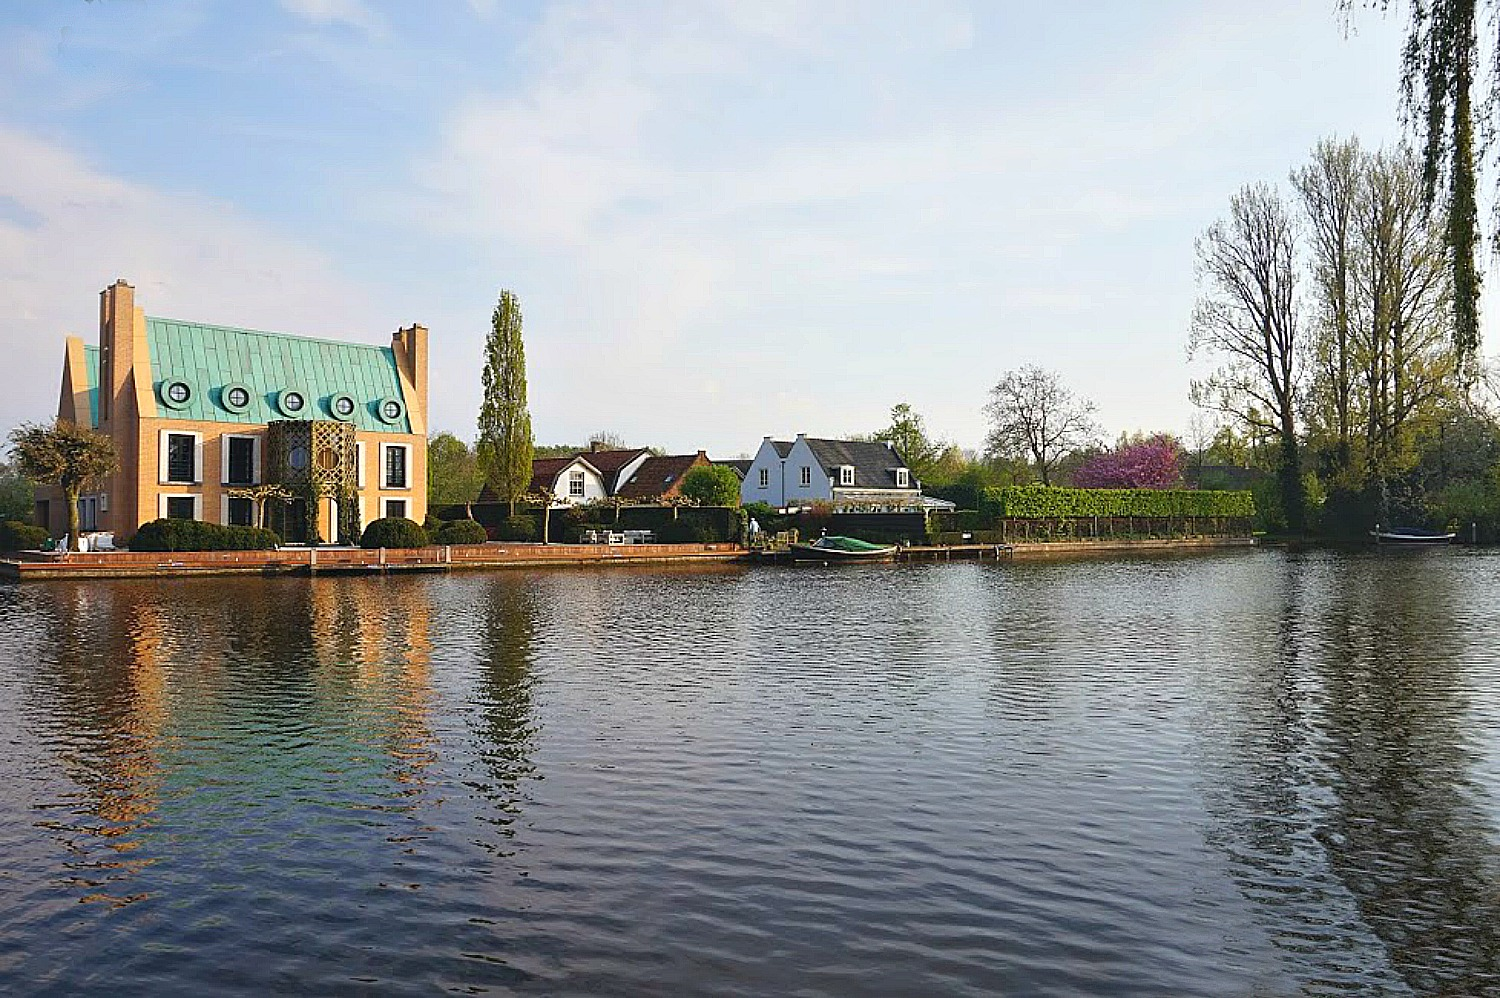 Best day trips from Amsterdam. Beautiful house on the water in Loenen aan de Vecht.